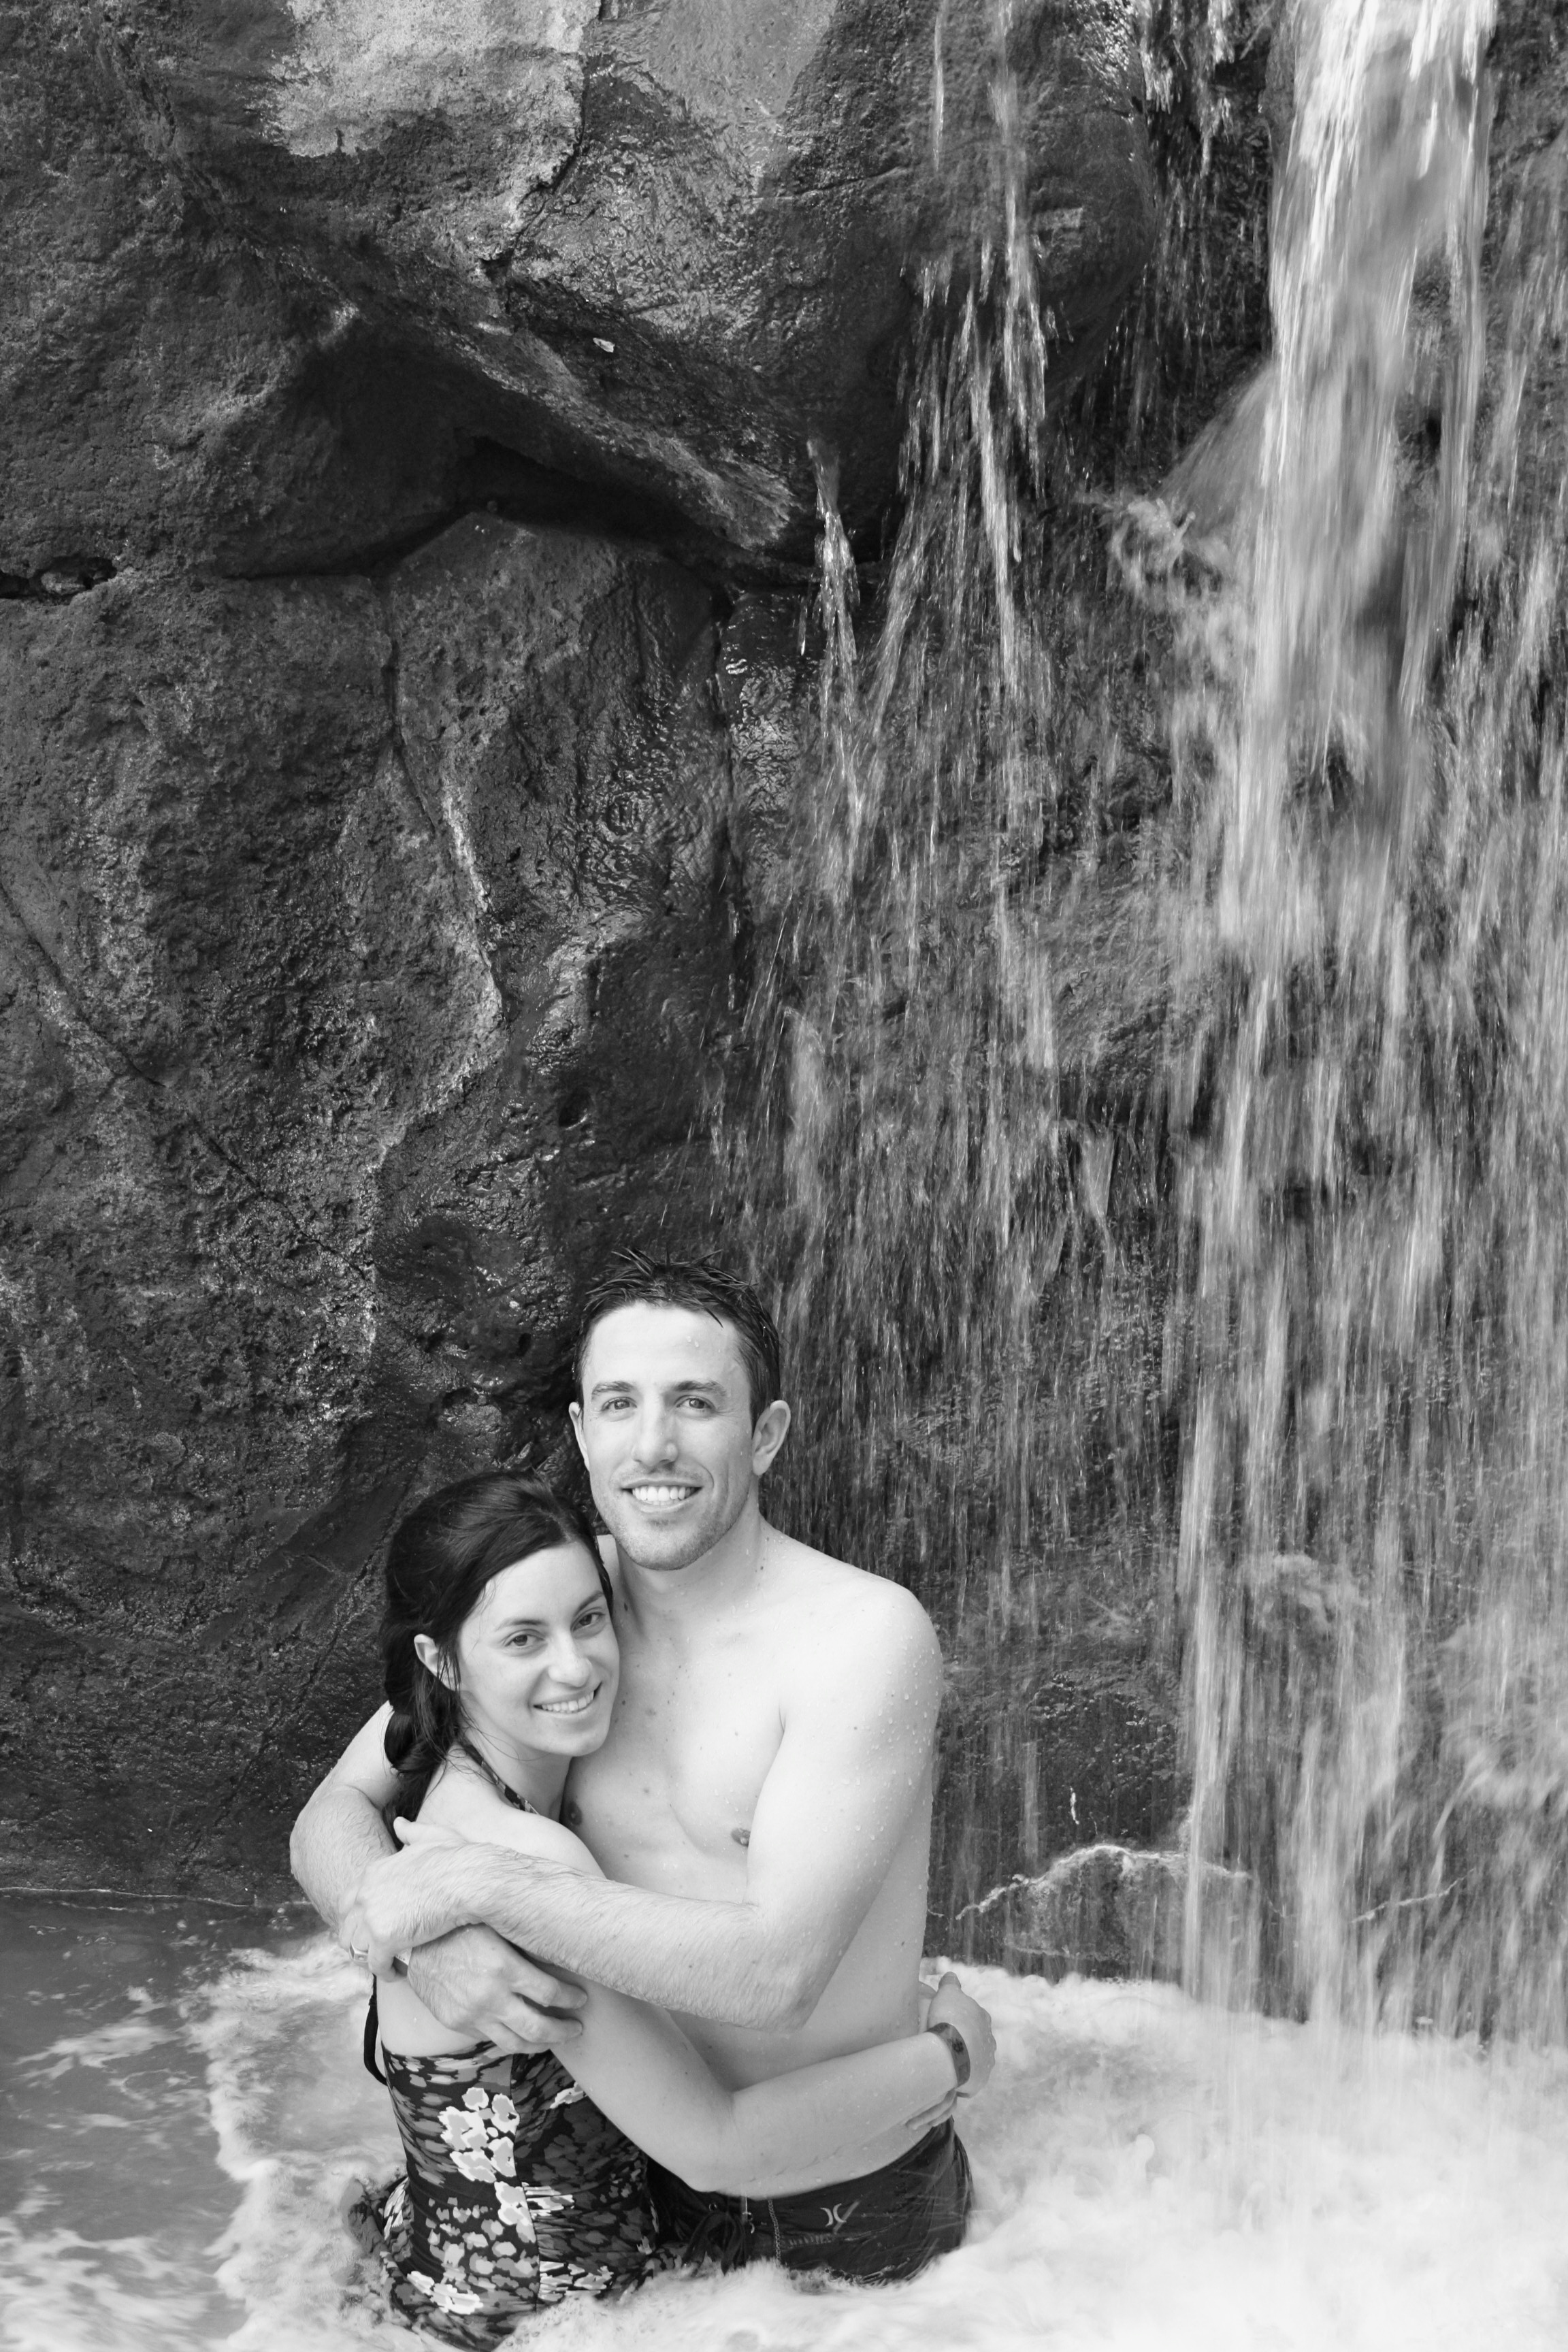 lovers in a waterfall